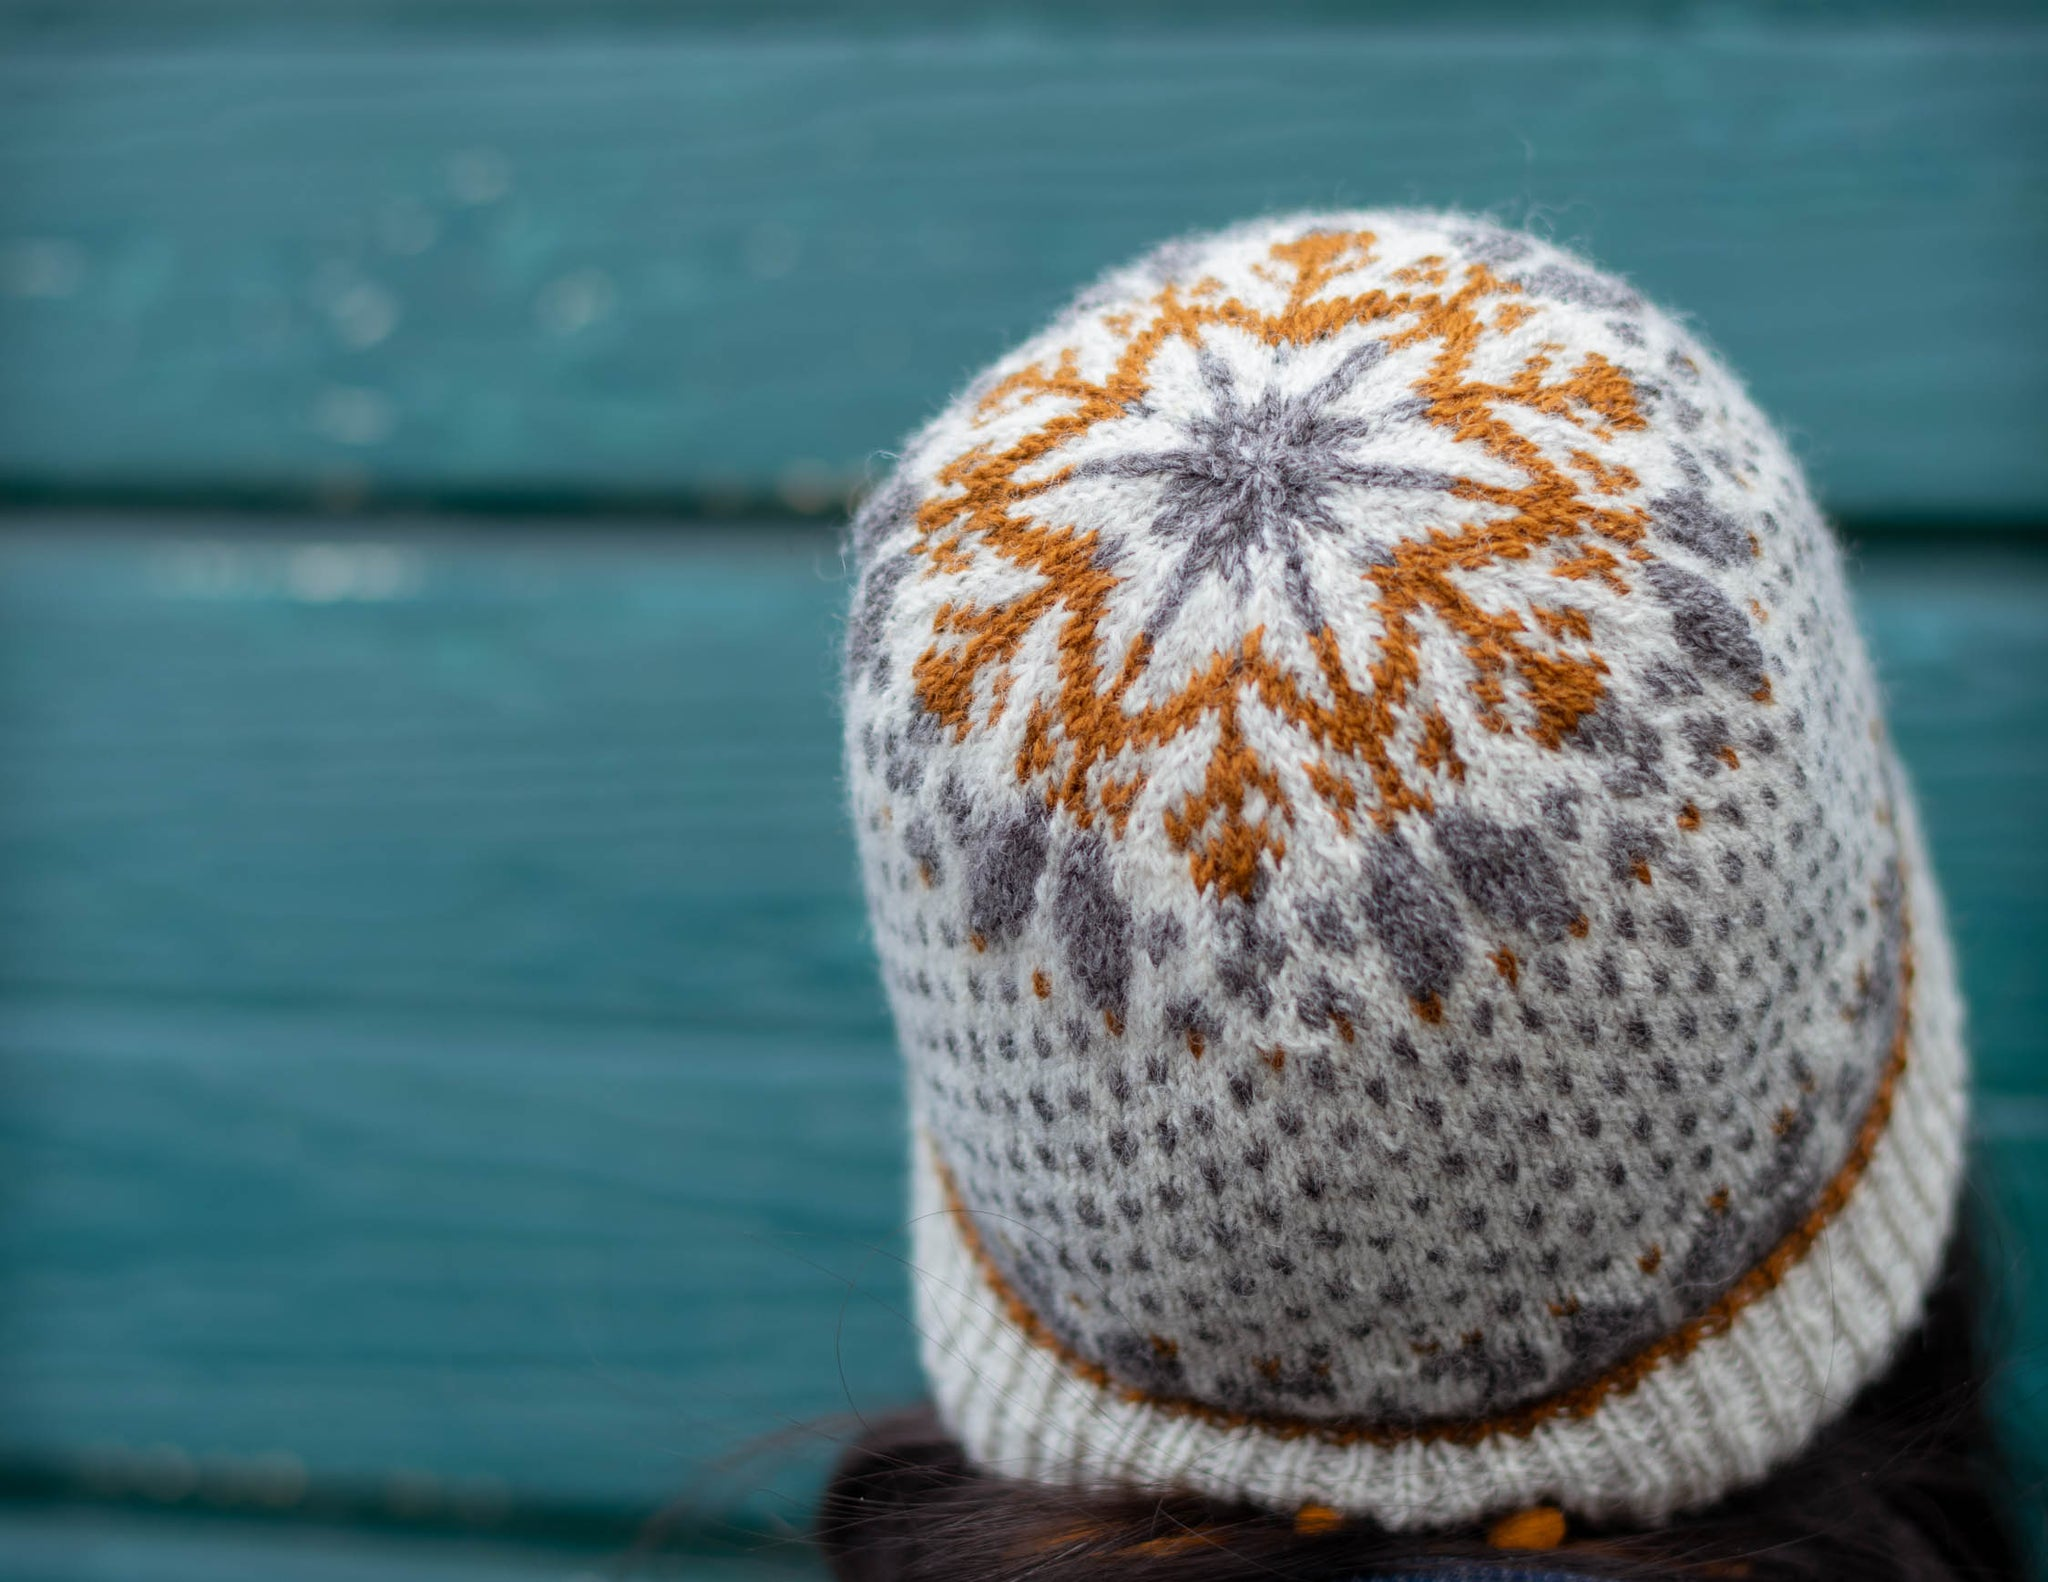 Neutral version of the Bellfield hat against a weathered teal background. The hat has a pretty snowflake design in the crown.